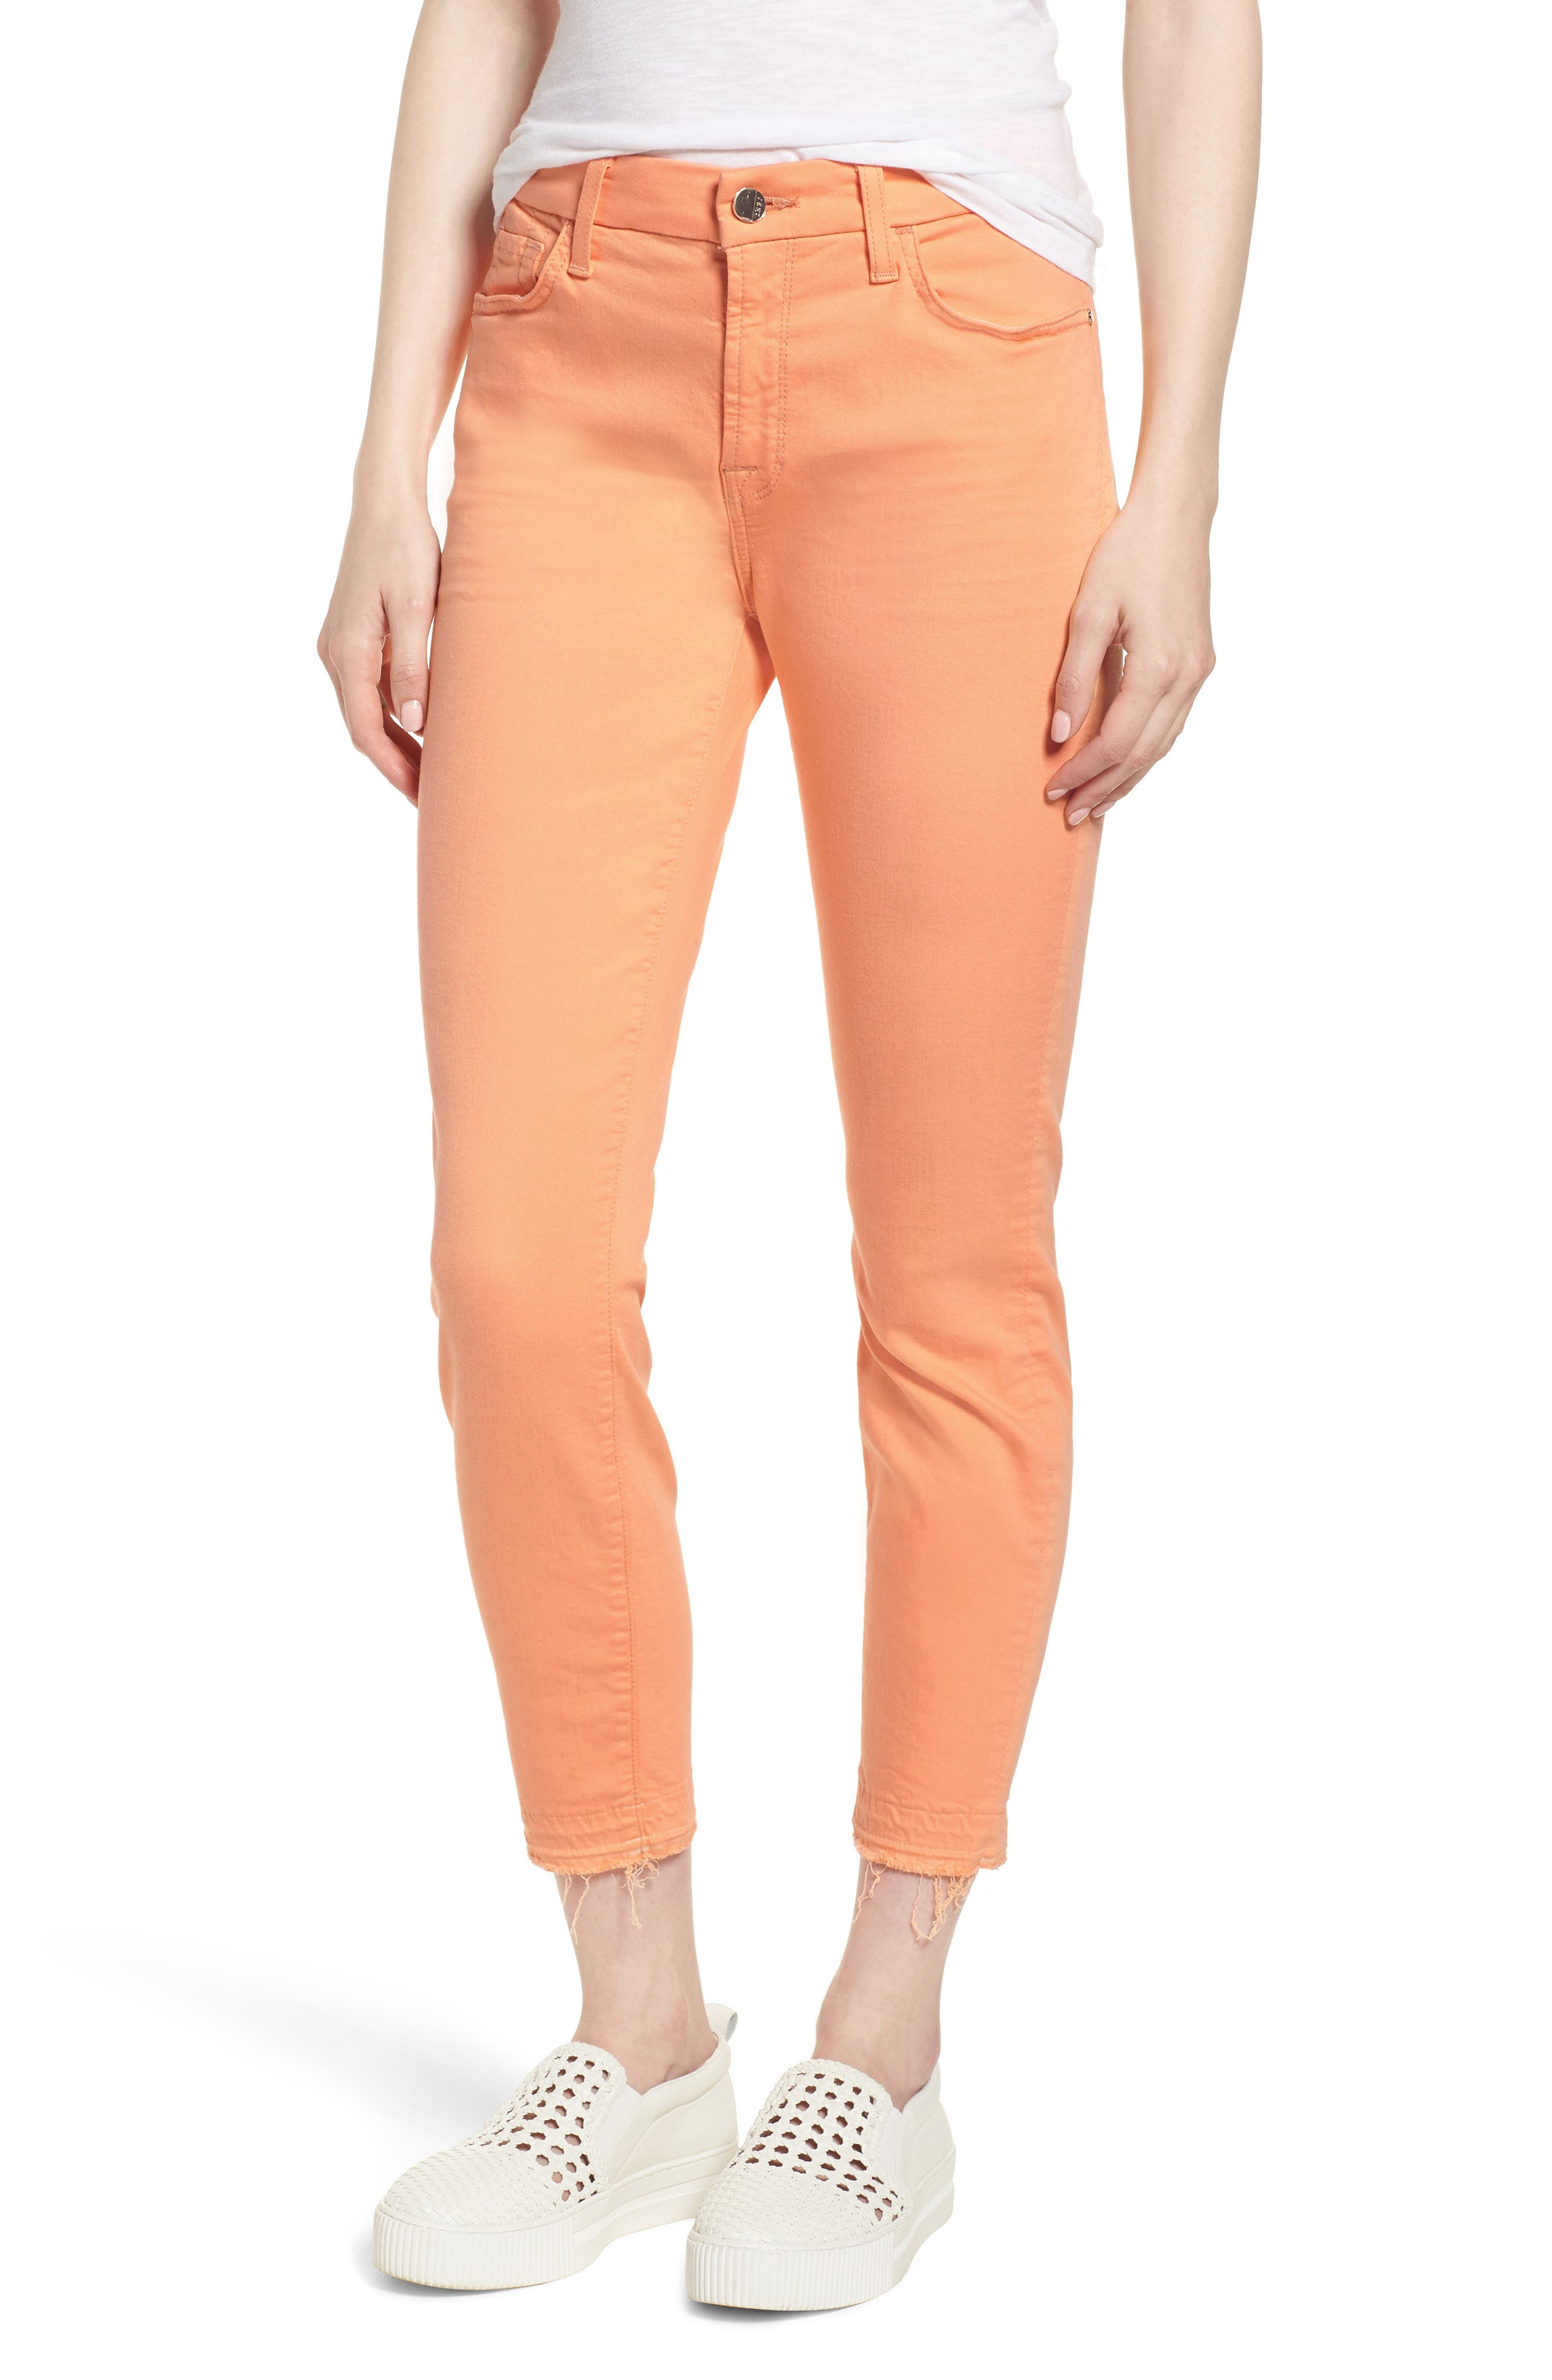 JEN7 BY 7 FOR ALL MANKIND Release Hem Colored Ankle Skinny Jeans in Cantaloupe